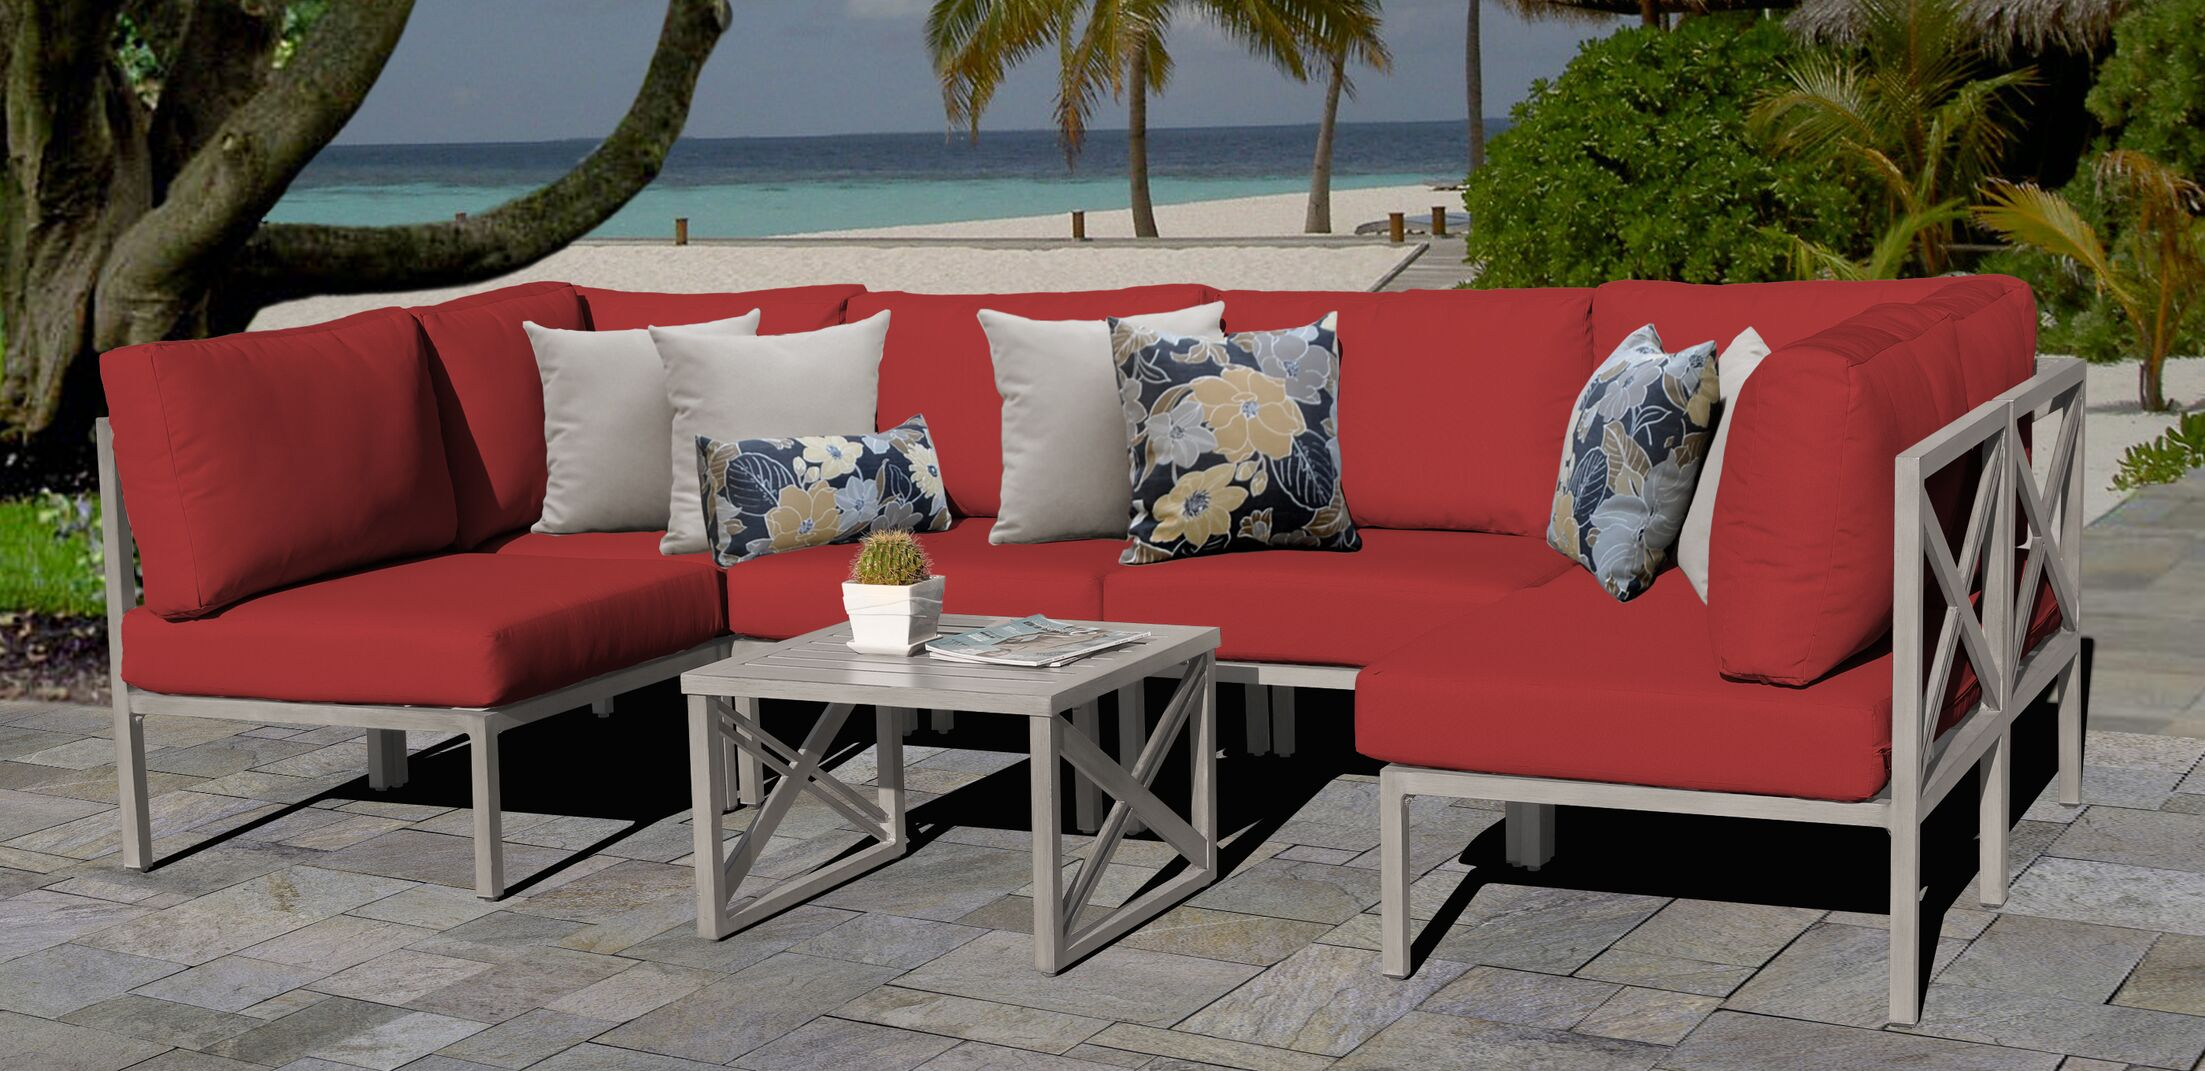 Carlisle 7 Piece Outdoor Sectional Set with Cushions Cushion Color: Terracotta